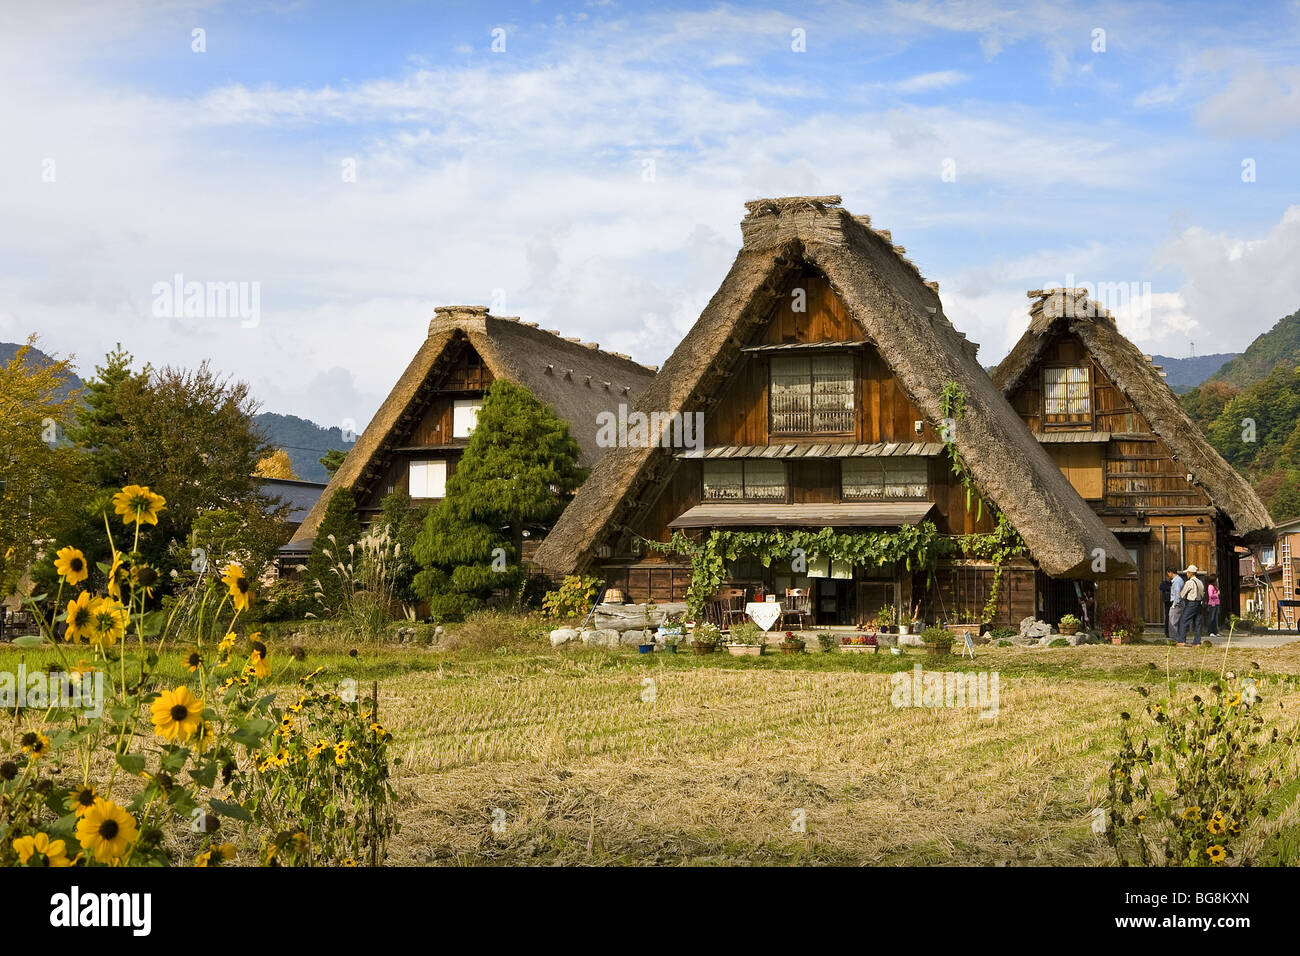 Traditional Japanese houses built in the style called 'Gassho-zukuri' in the village of Shirakawa-go. Japan. - Stock Image